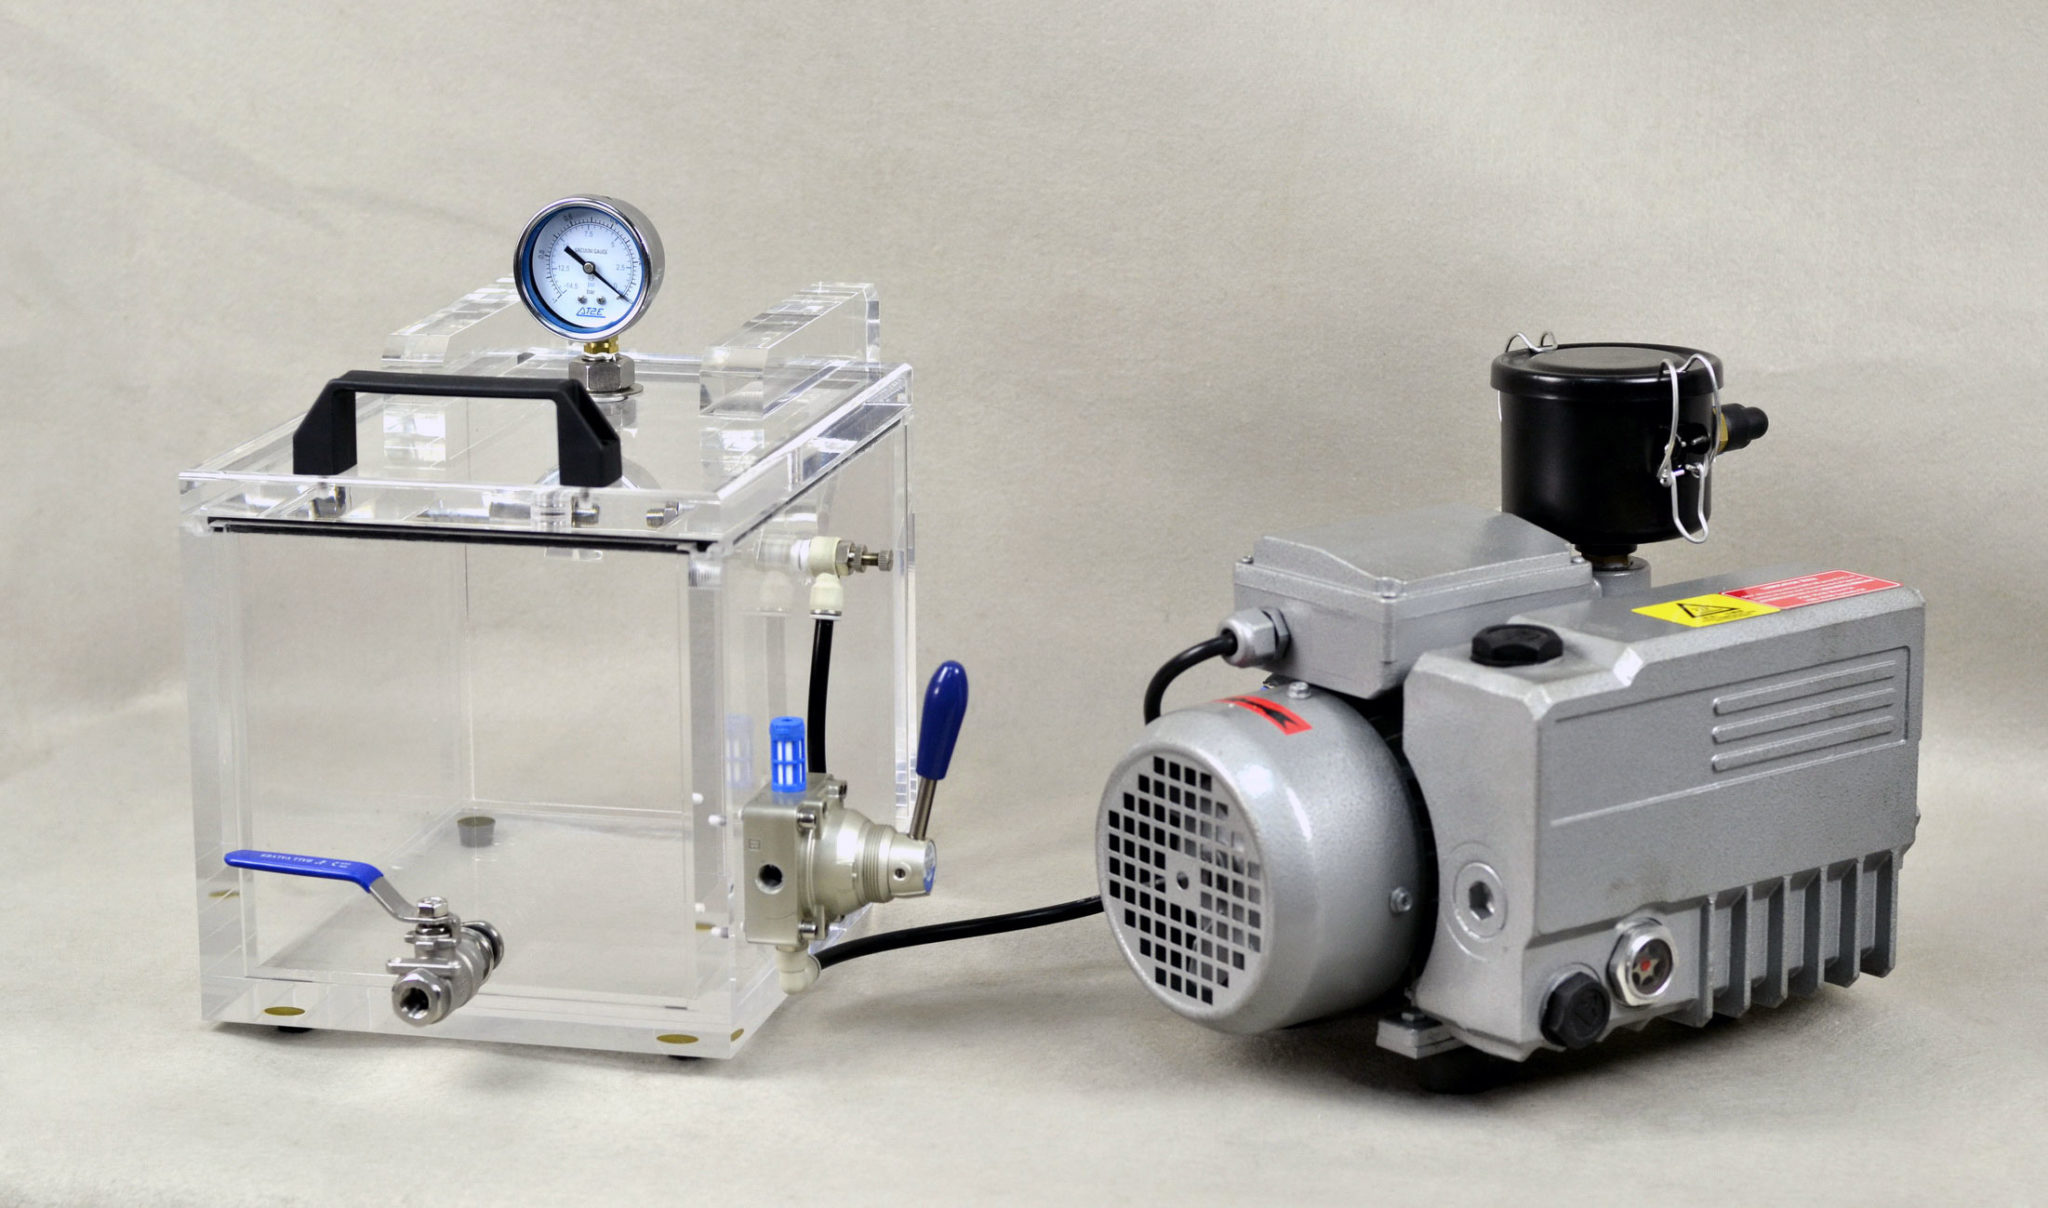 Electrical Leakage Tester : Vlt eco vacuum leak tester model air and water